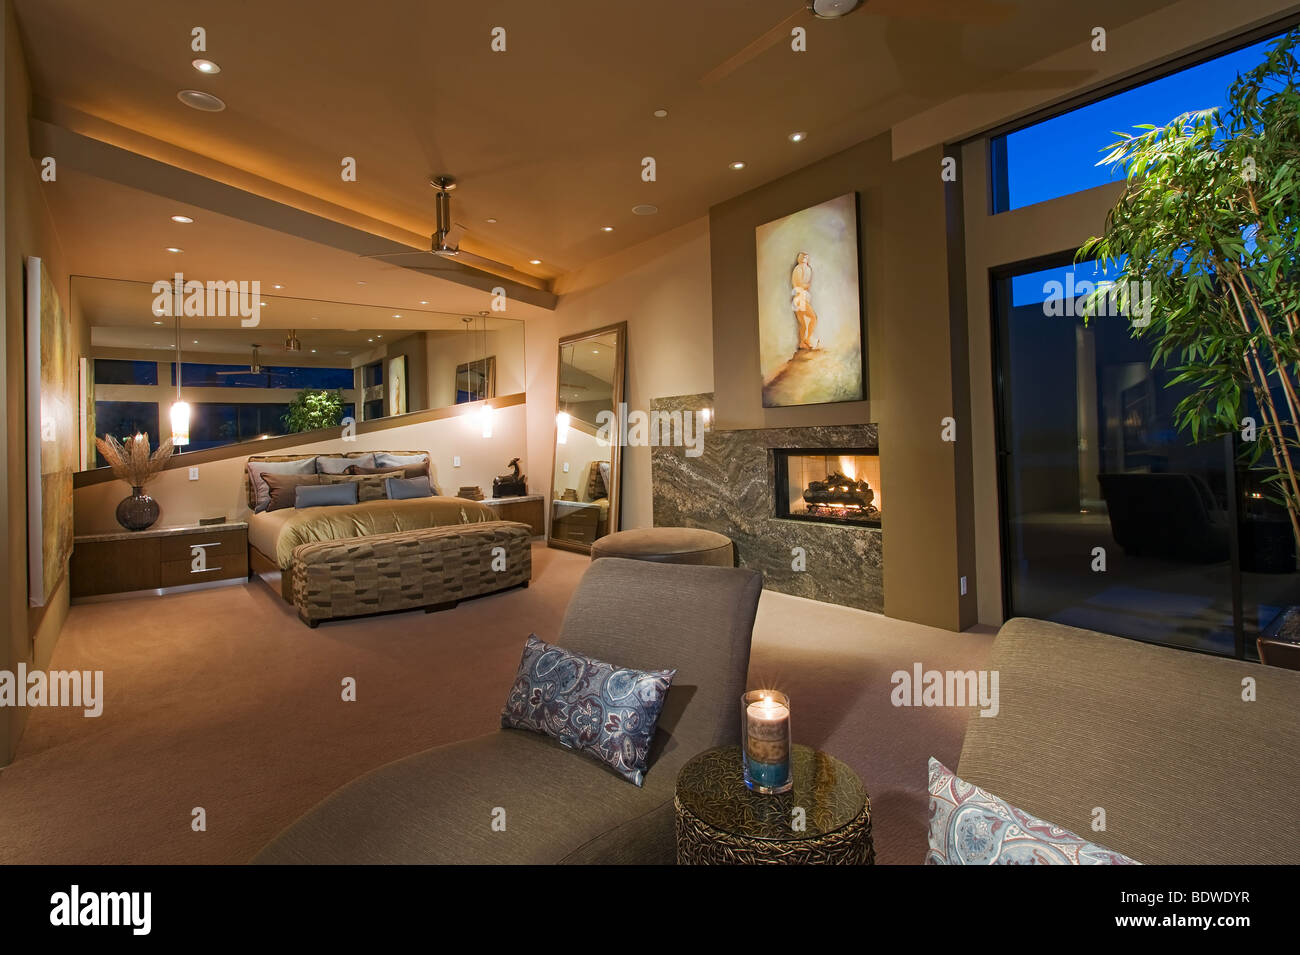 Dramatic modern master suite bedroom shown at night with ...